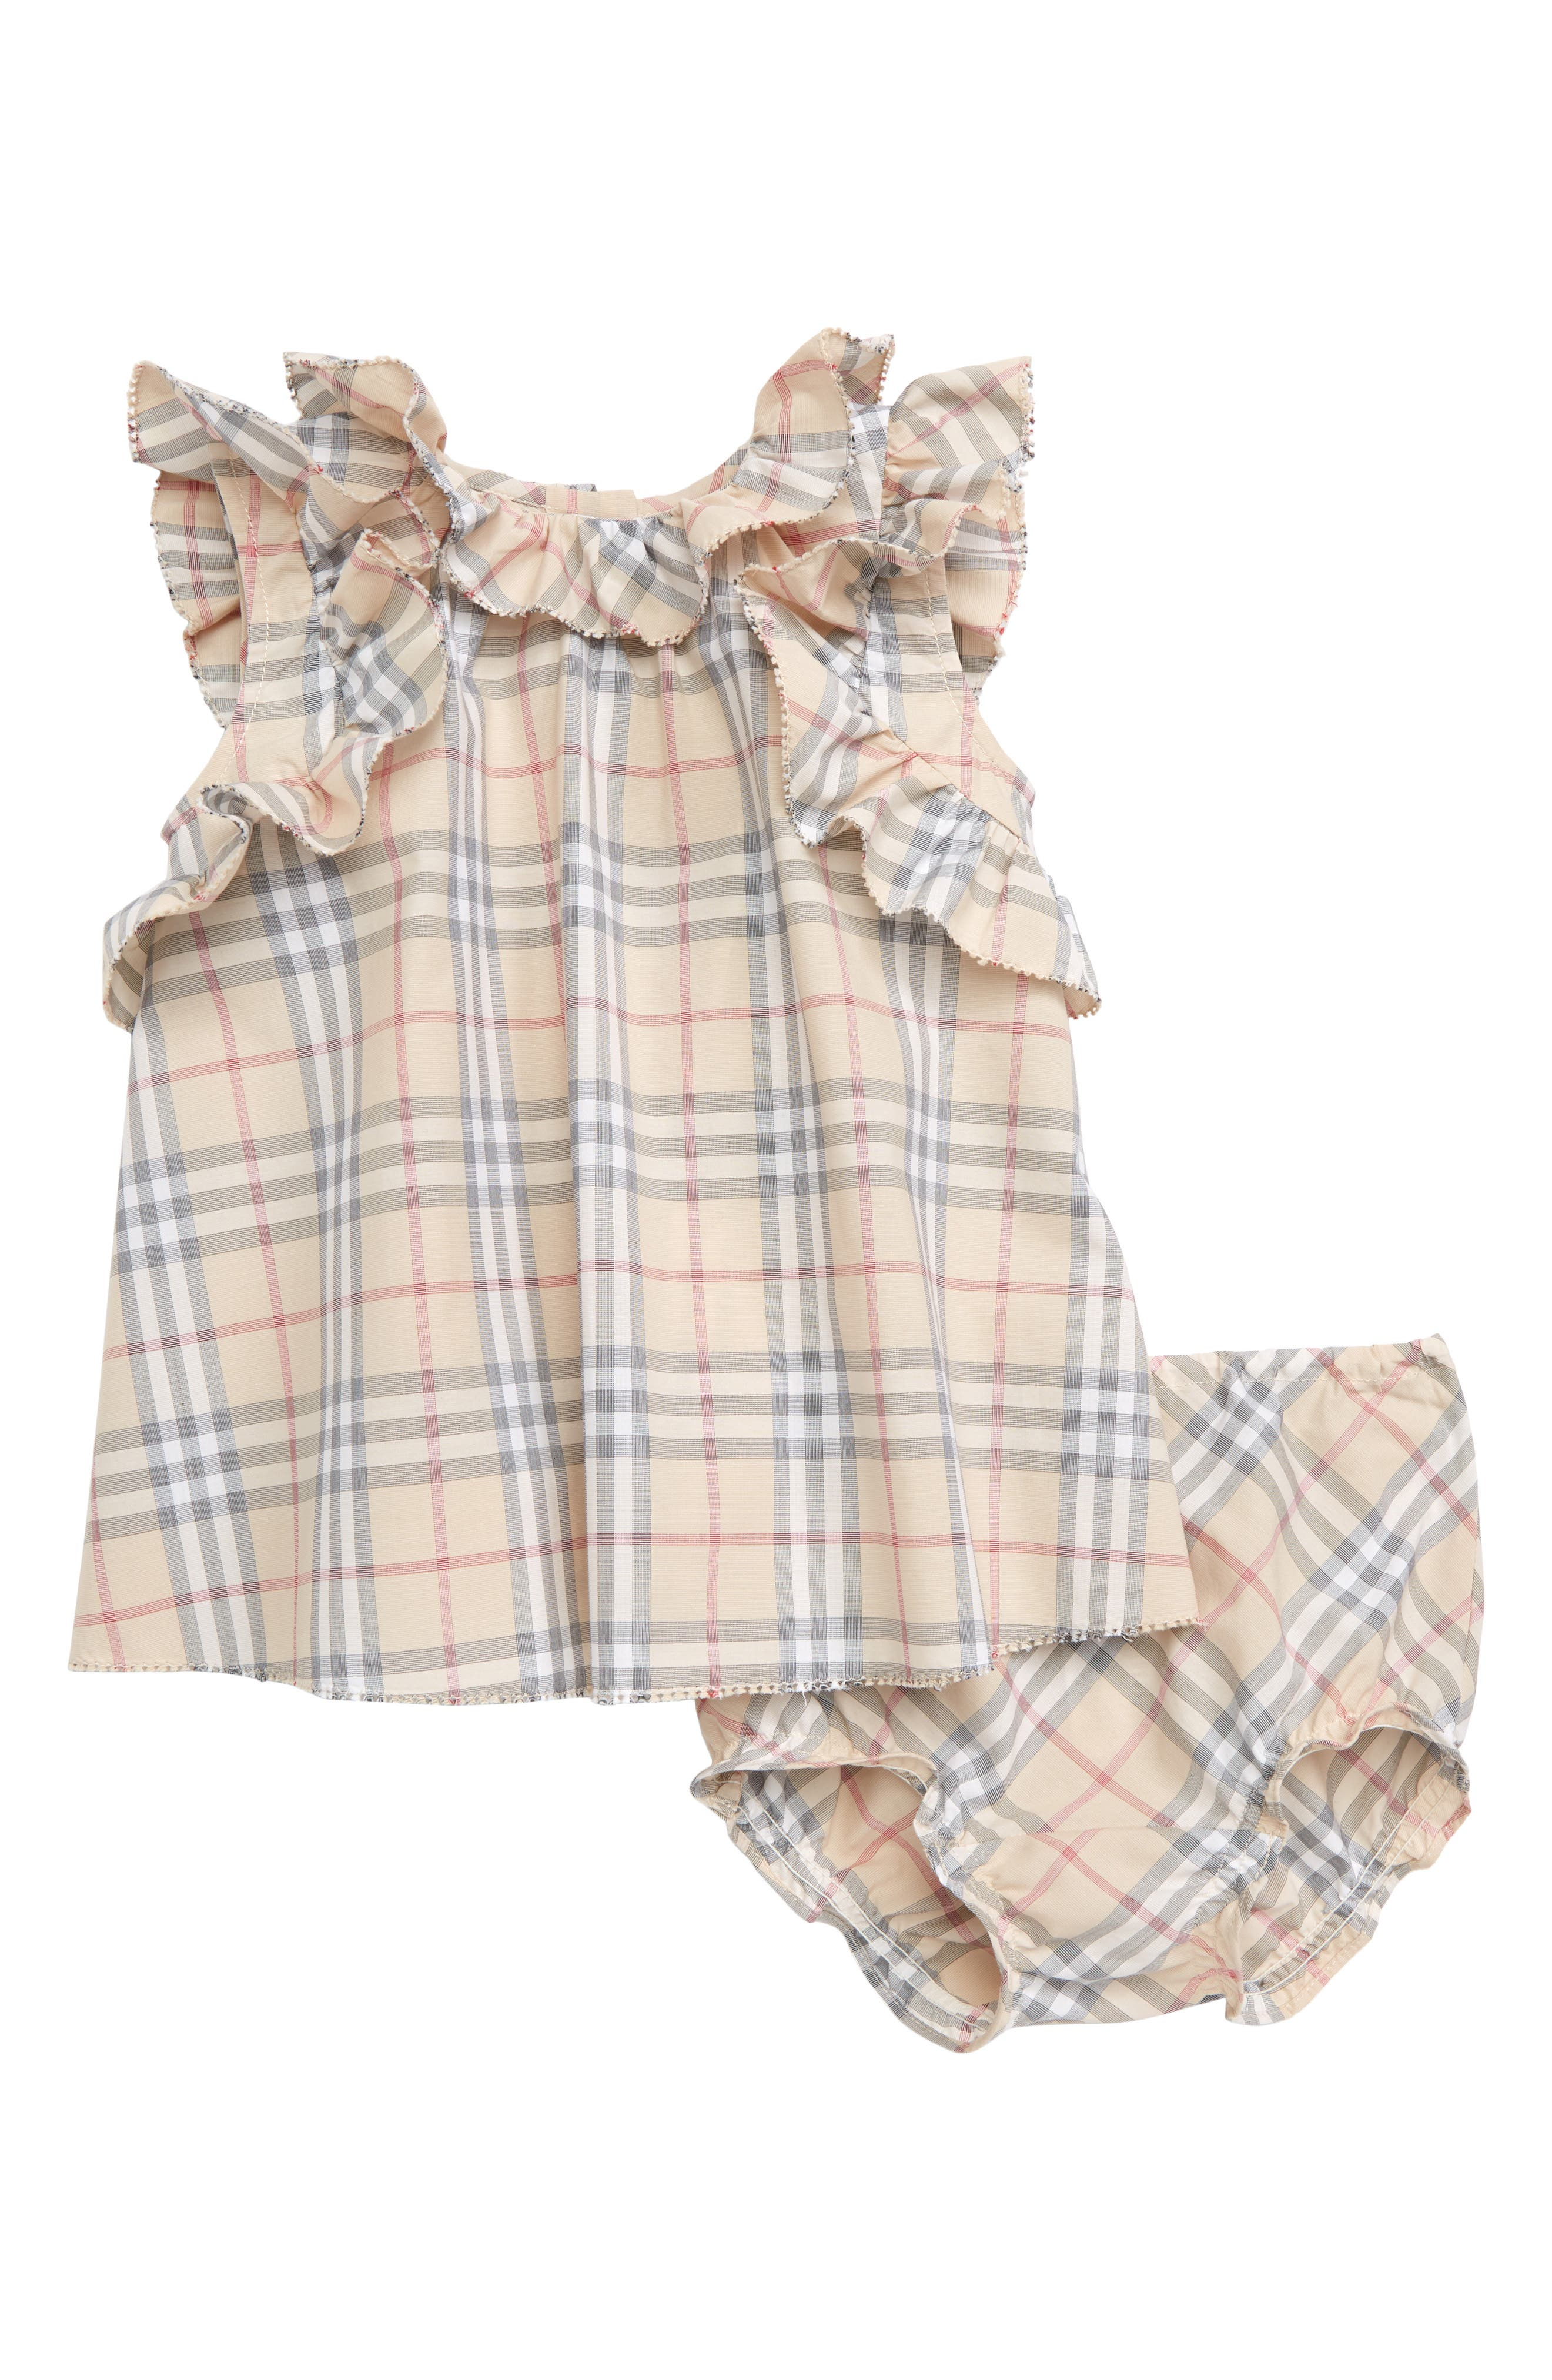 Carla Swing Top & Bloomers Set,                         Main,                         color, PALE STONE IP CHECK